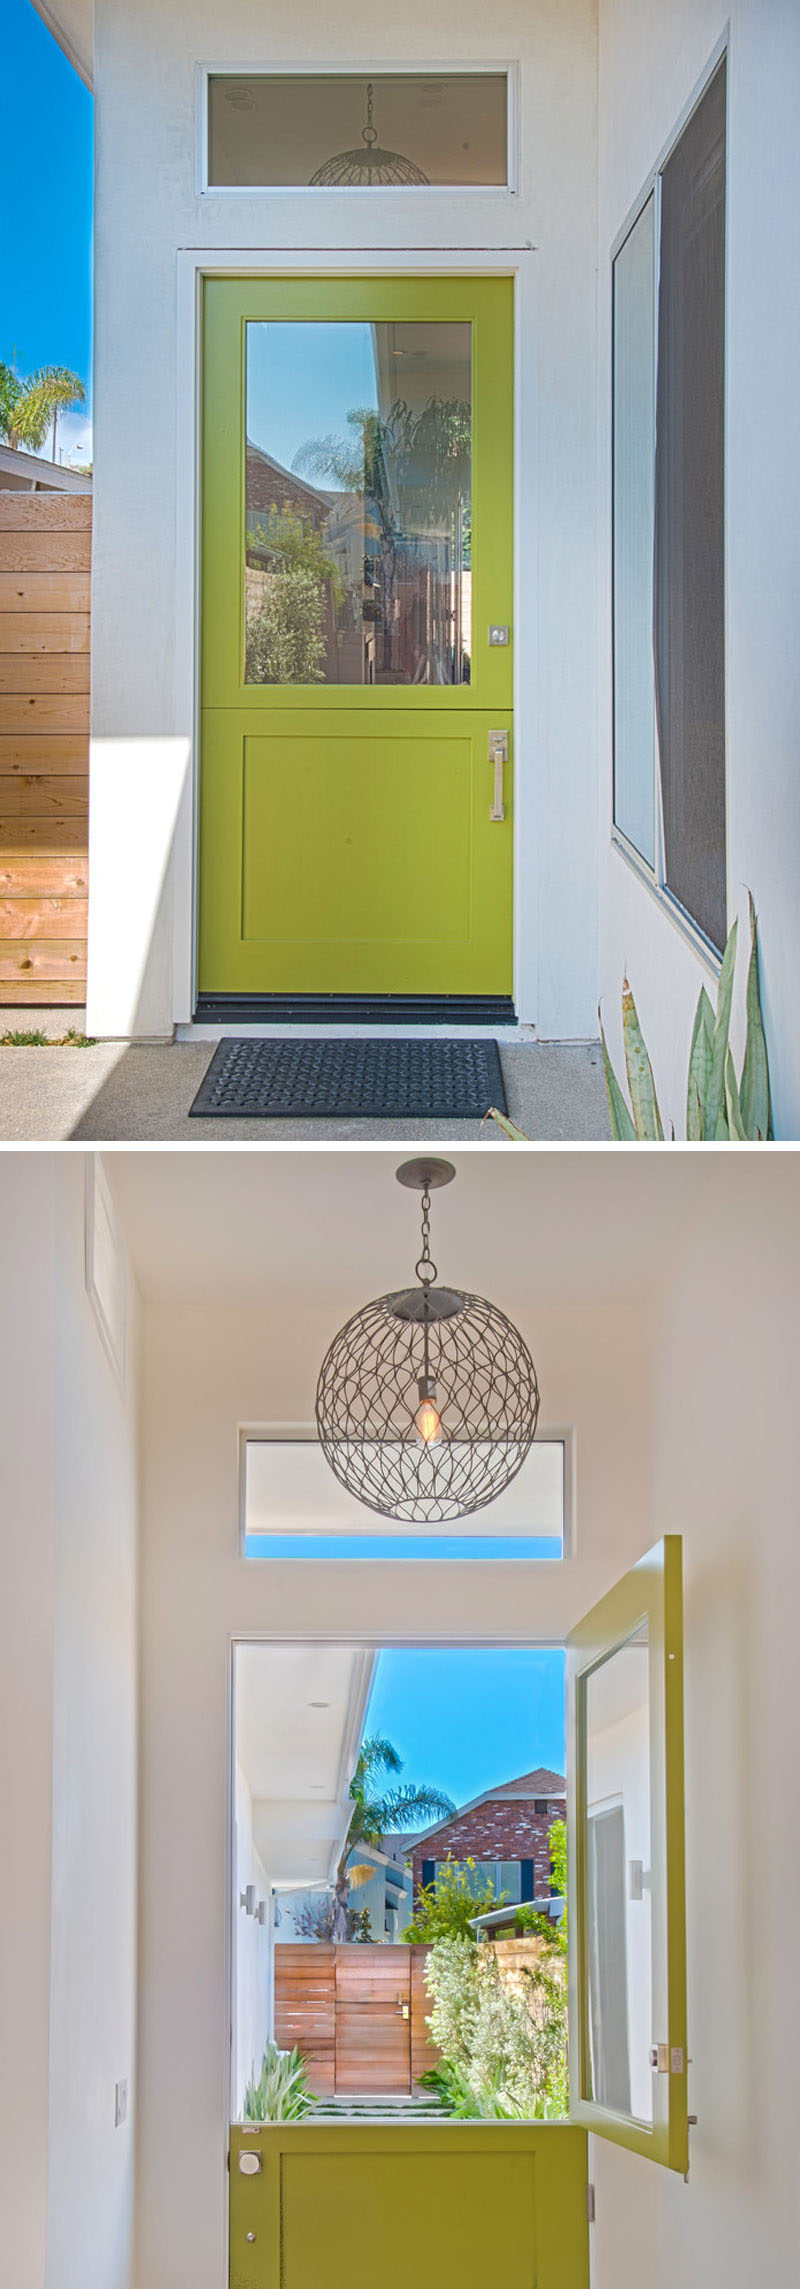 Door Design Ideas - 9 Examples Of Modern Dutch Doors // A bright green Dutch door greets people as they arrive and brightens up the entry way of this modern home.